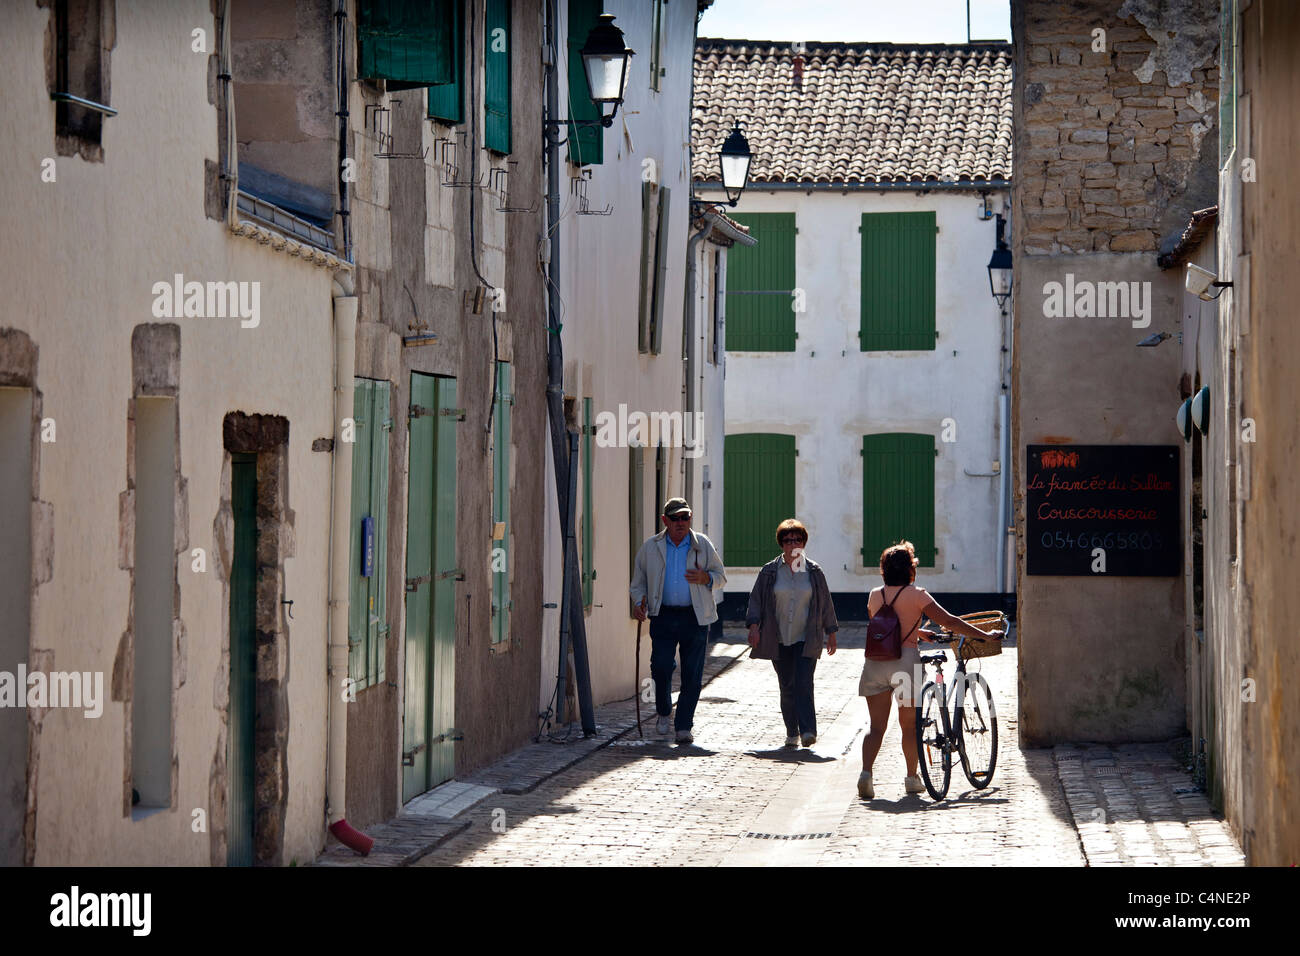 Street scene in La Flotte, Ile de Re, France - Stock Image